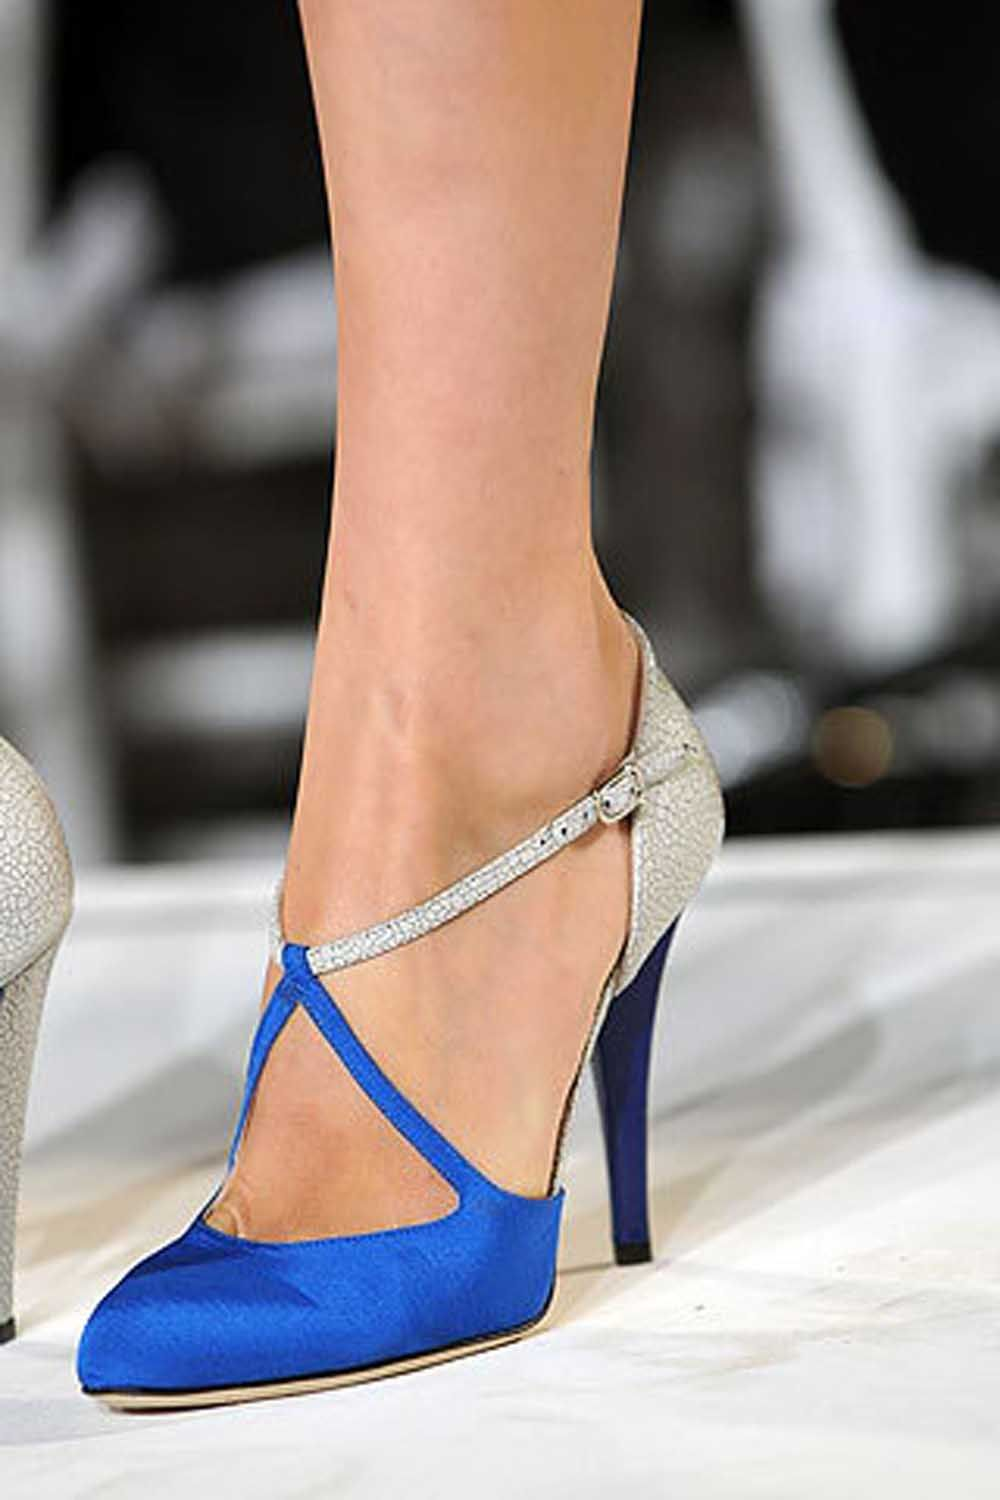 Pin by fatima machado on shoes pinterest blue high heels high